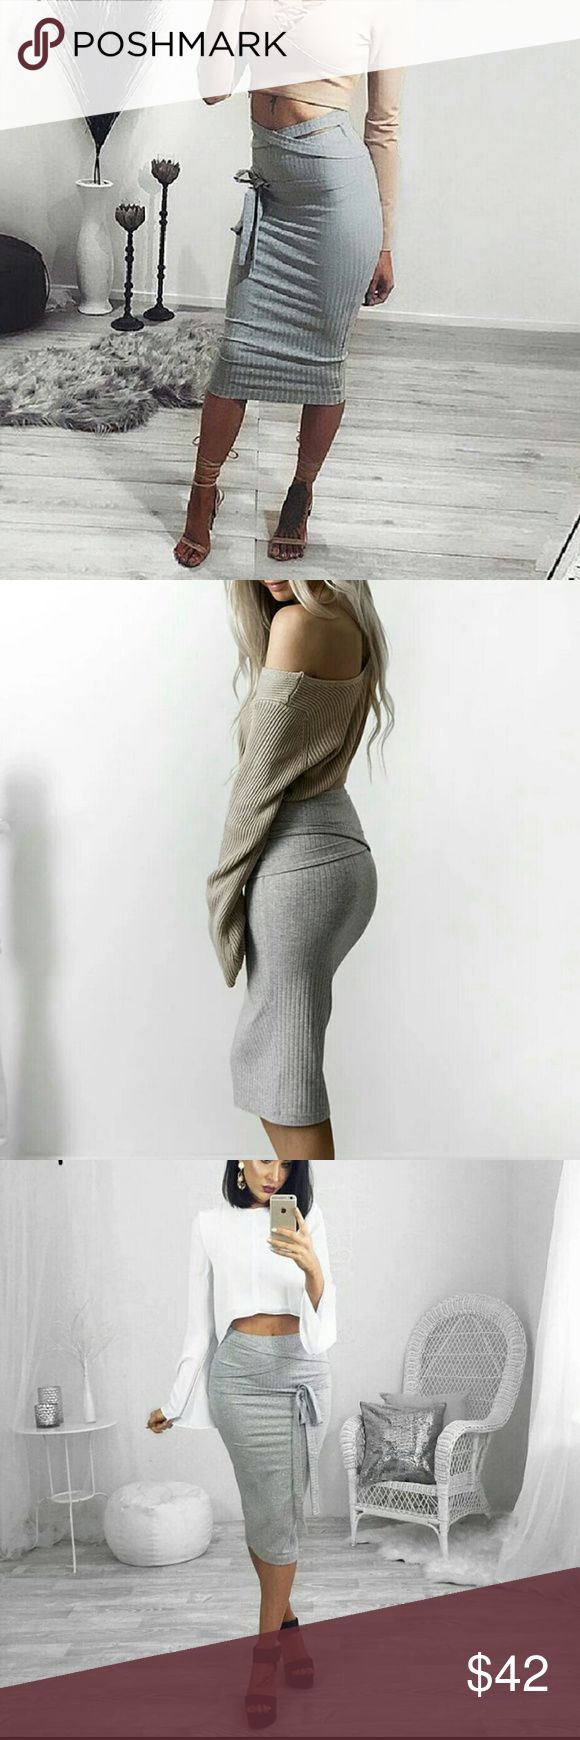 Best 25+ Slim fit skirts ideas only on Pinterest   Shirt without ...